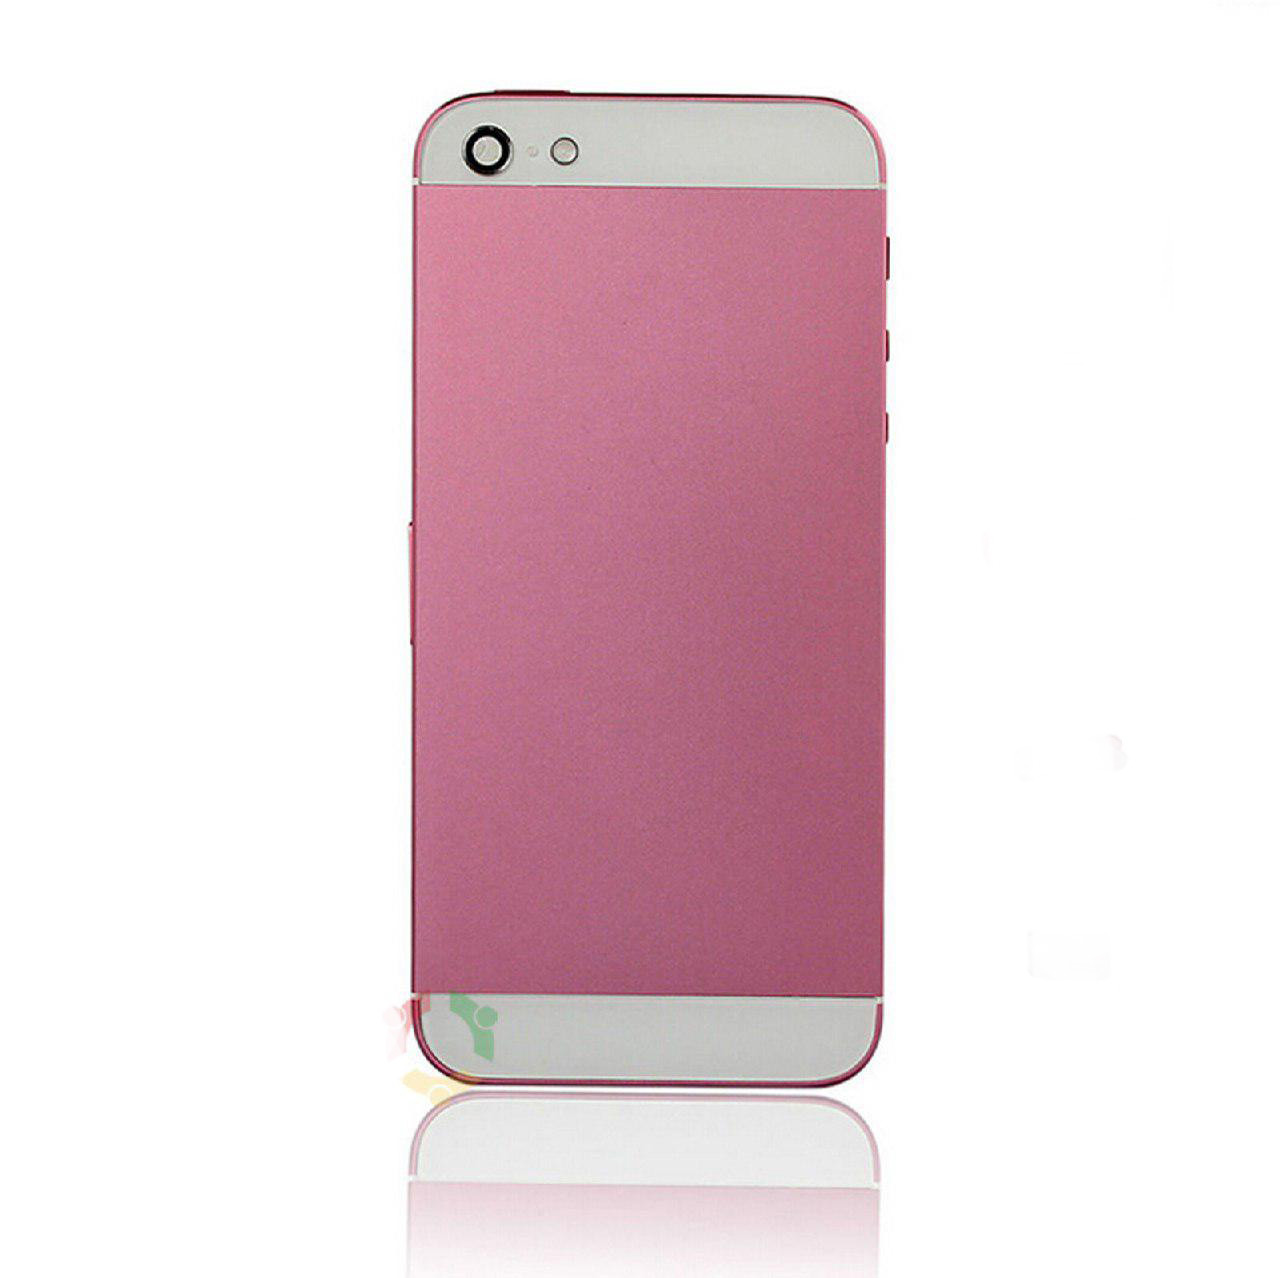 Apple iPhone 5s Full Original Housing Cover Complete Back Battery ...